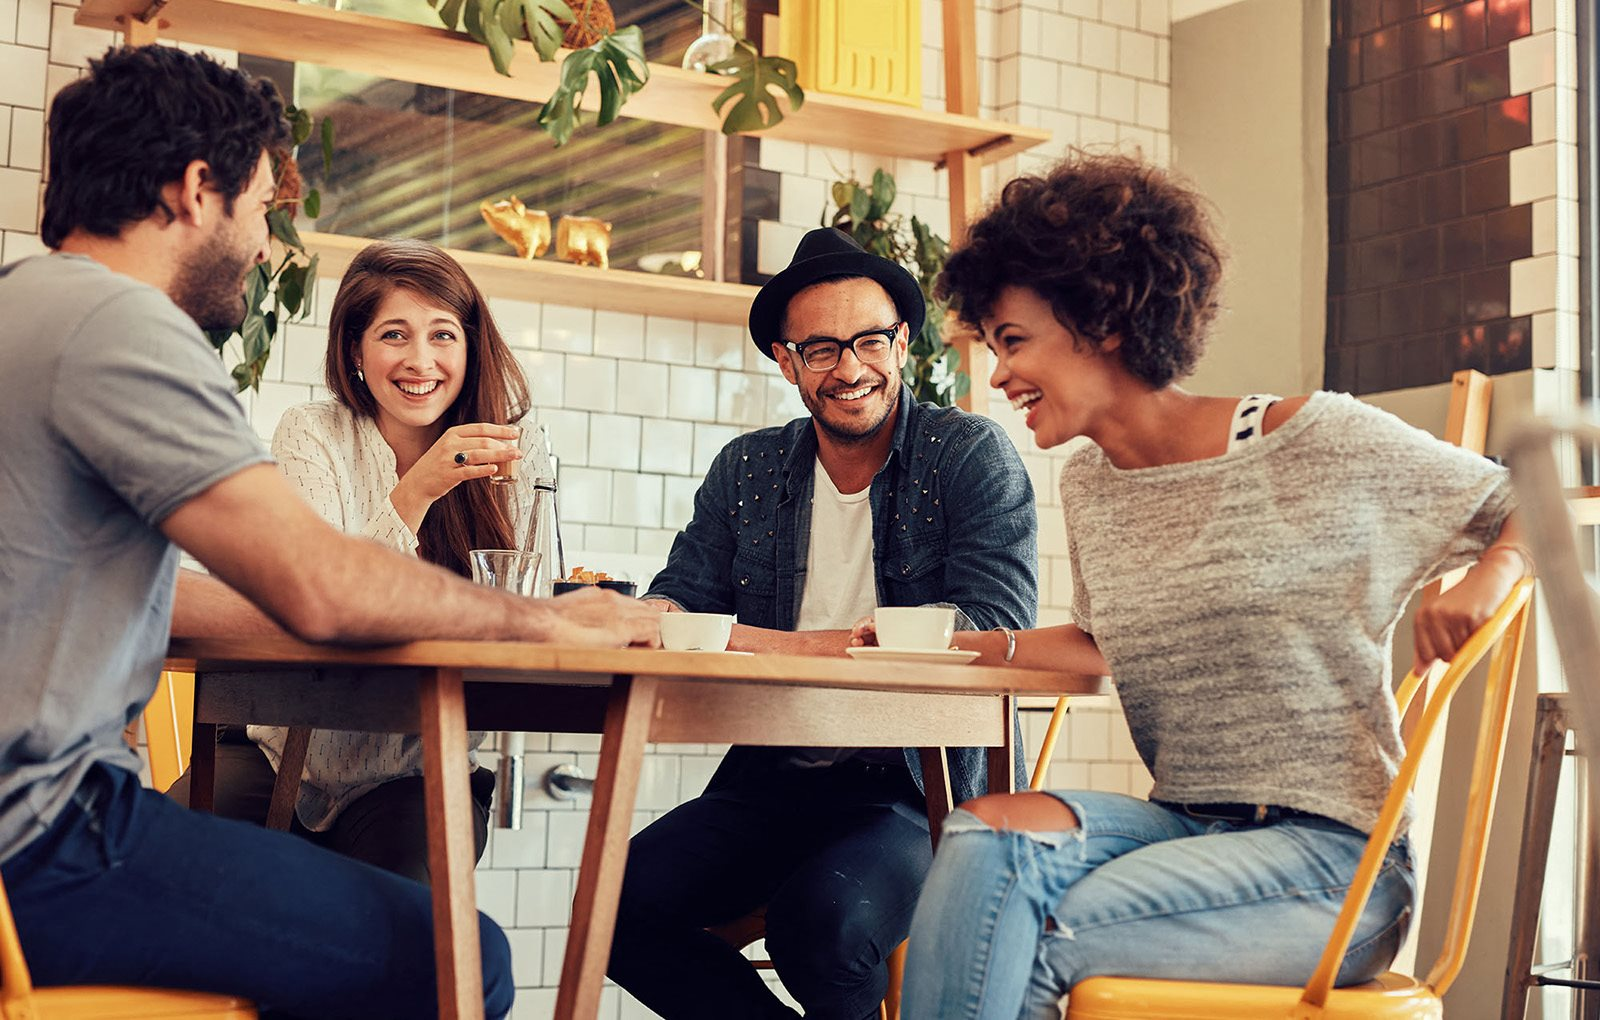 Four people sitting around a table happily chatting